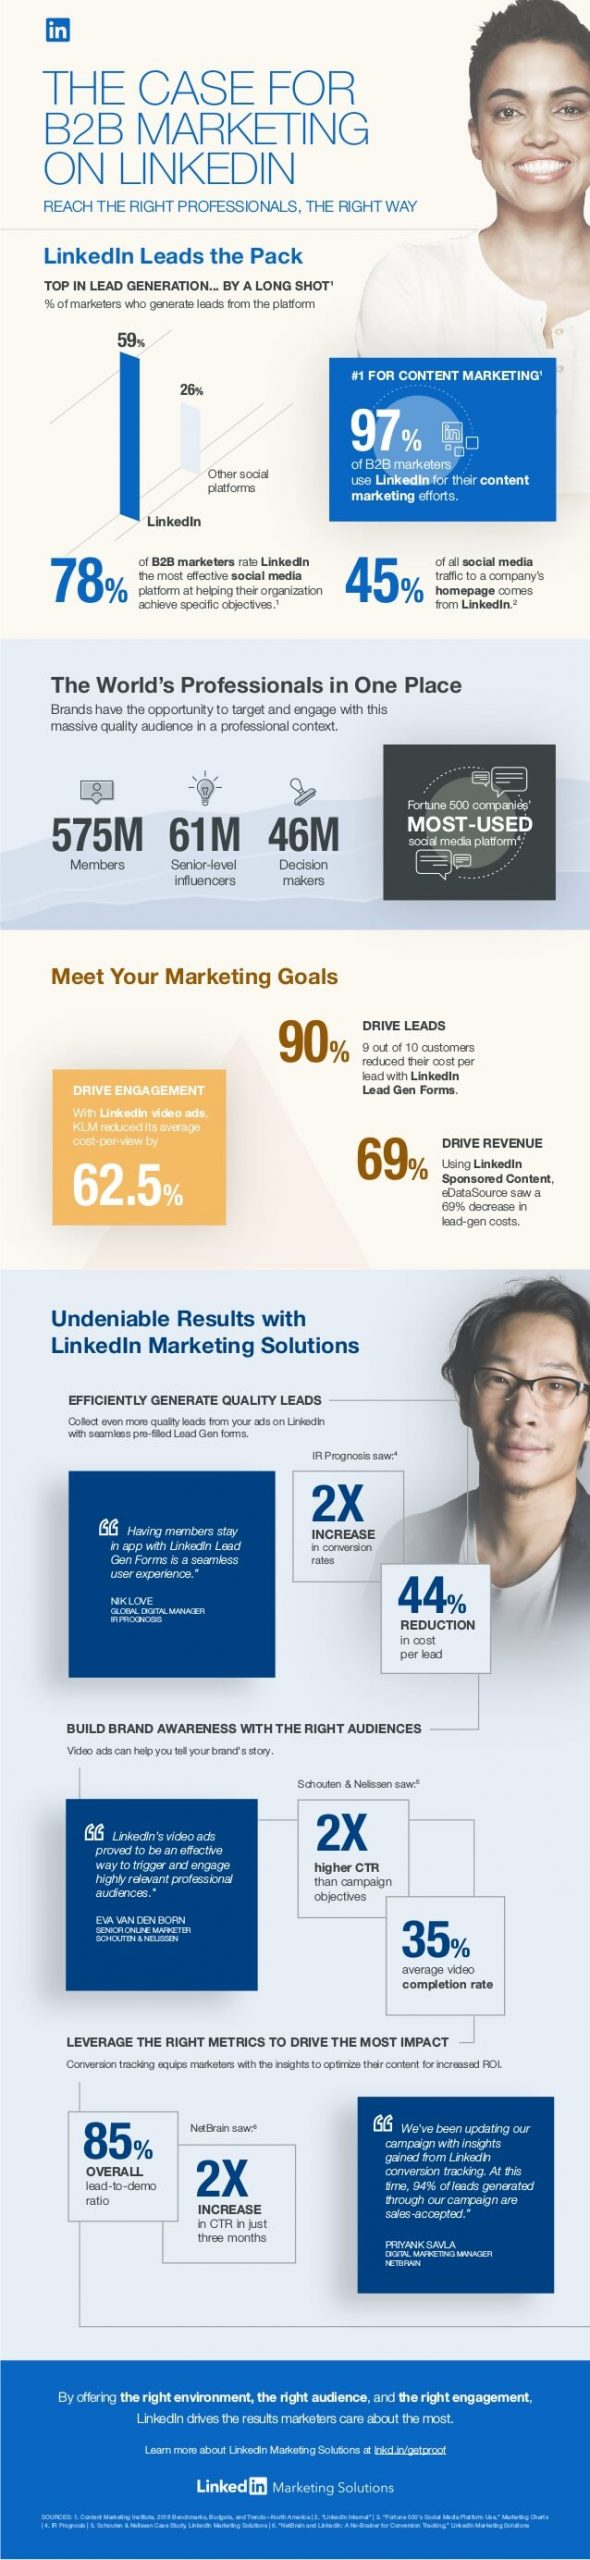 The Case for BB Marketing on LinkedIn compressed